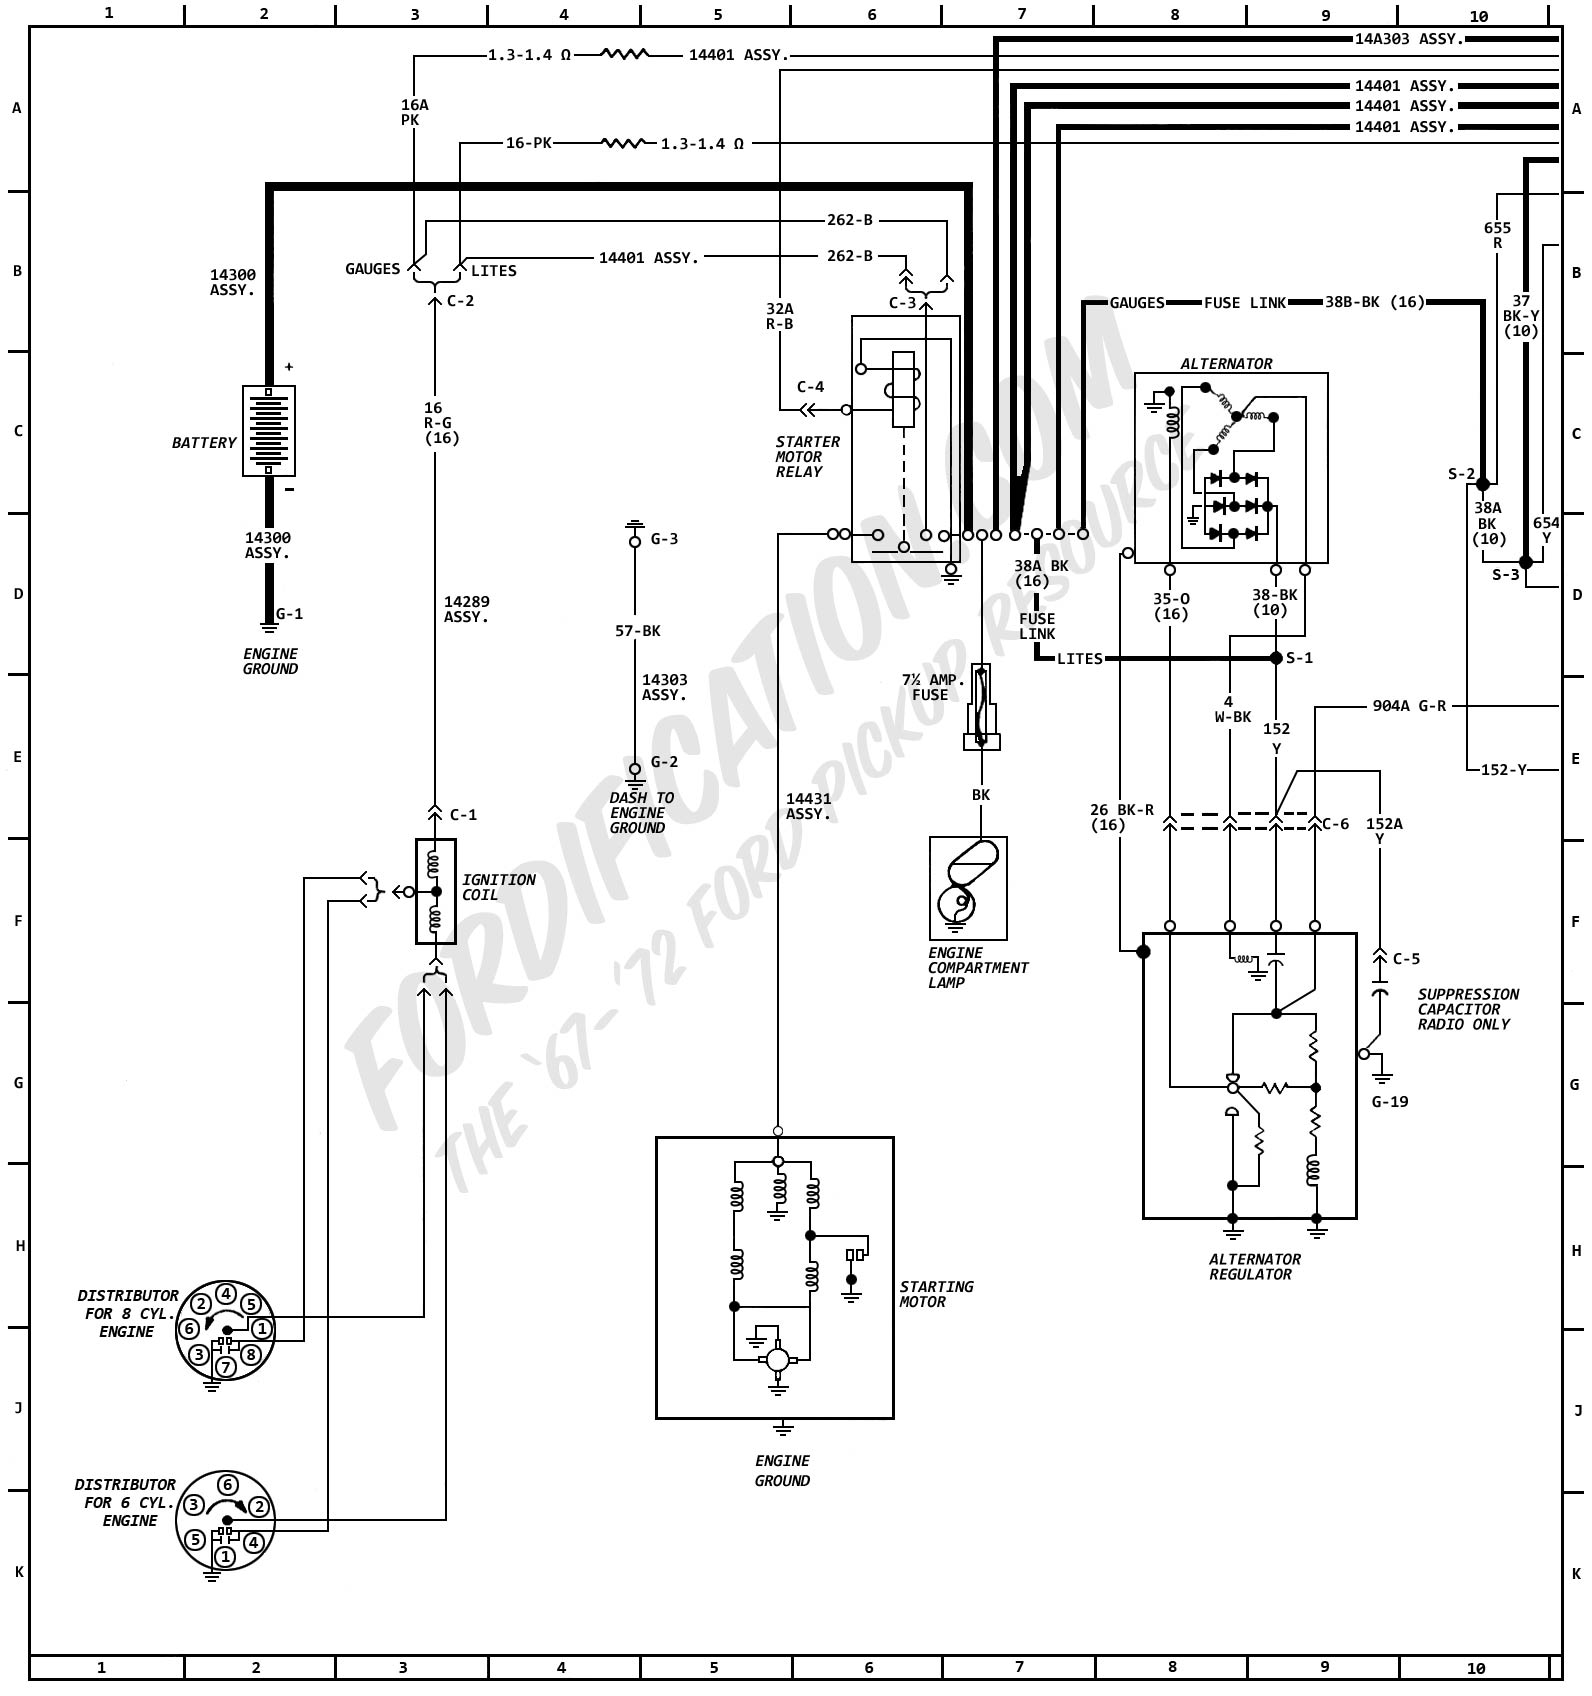 1972MasterWiring_01 1972 ford truck wiring diagrams fordification com  at gsmx.co